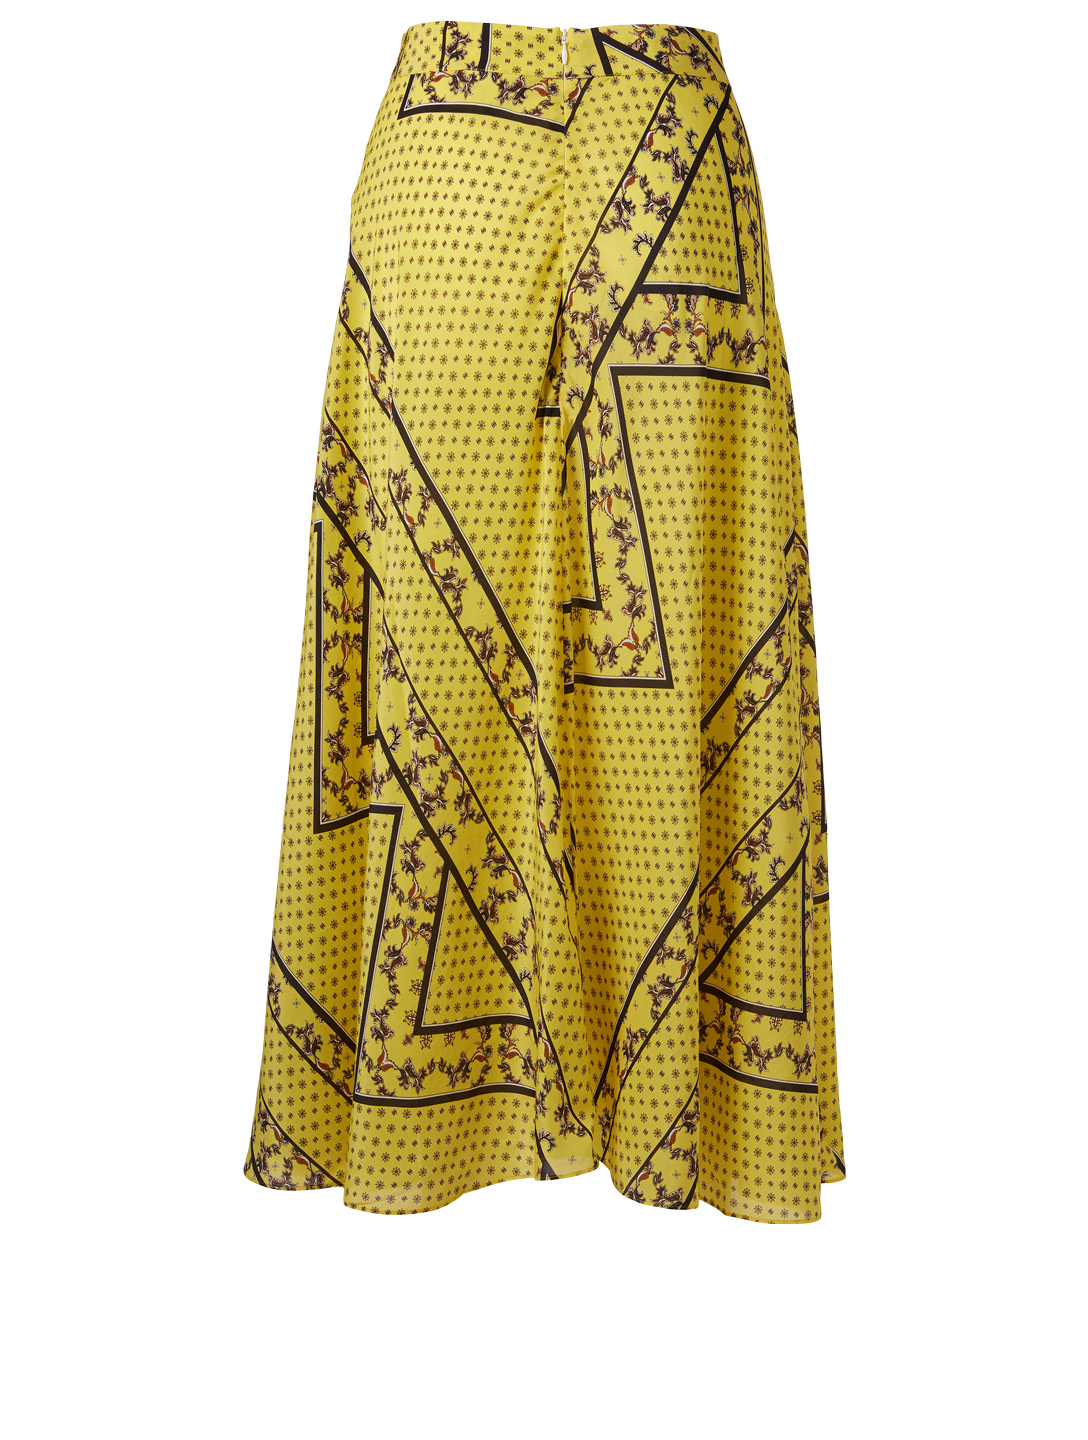 GANNI Printed Silk A-Line Midi Skirt Women's Yellow